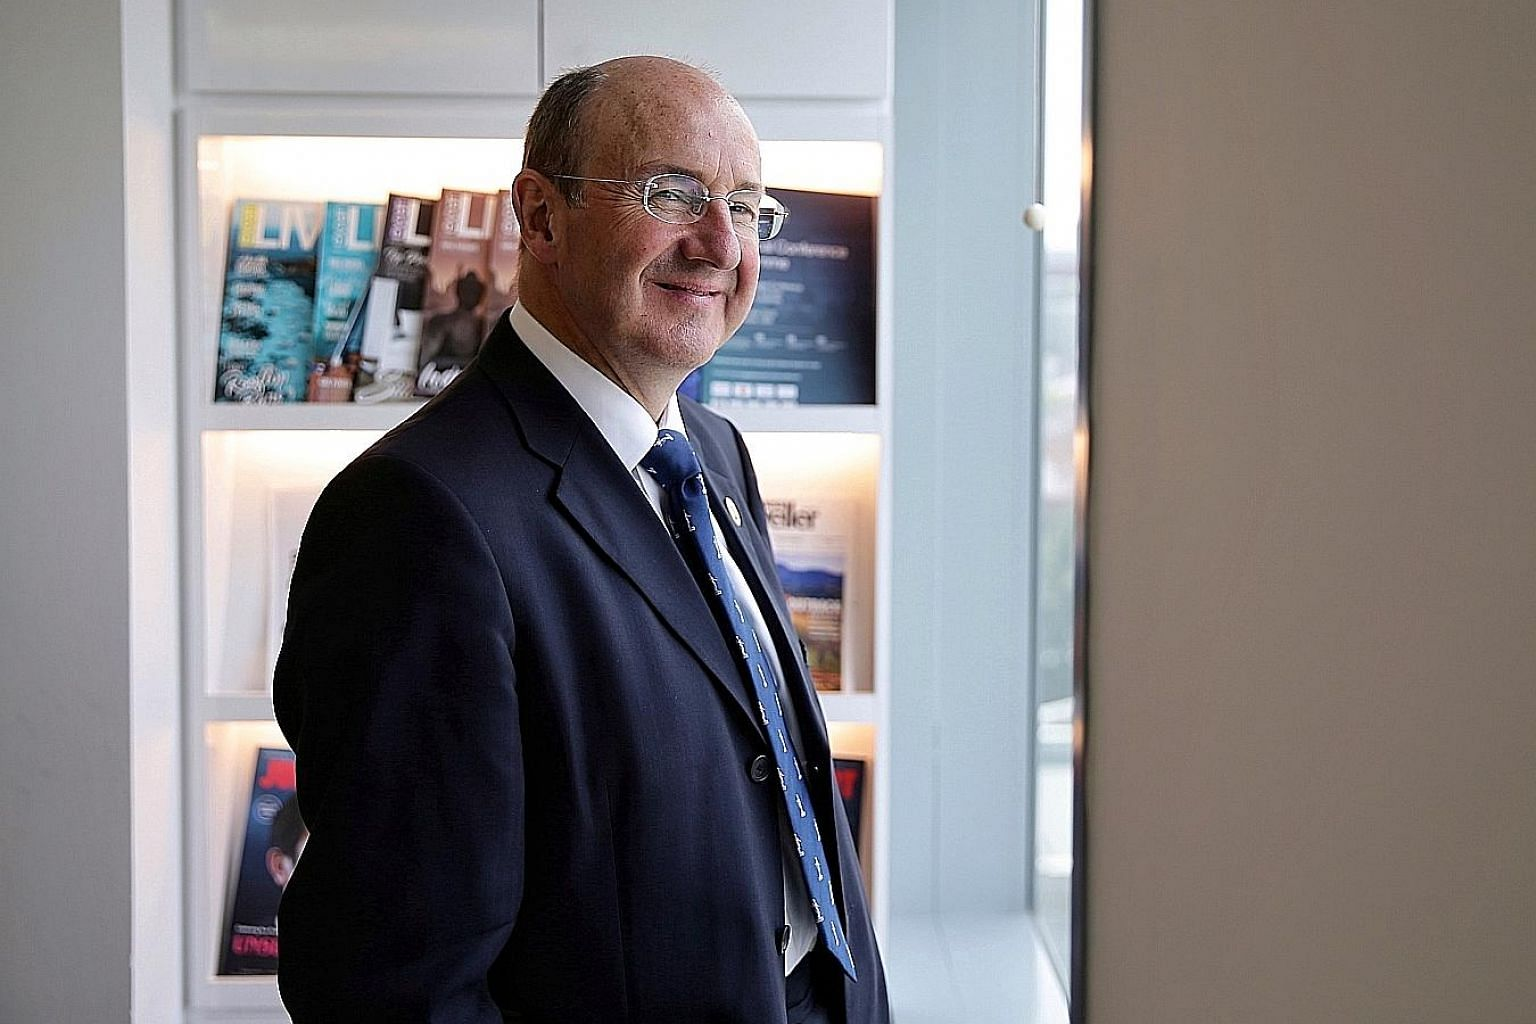 Mr Michael Izza, head of the Institute of Chartered Accountants in England and Wales, said private enterprise now has more opportunity than ever to make an impact.